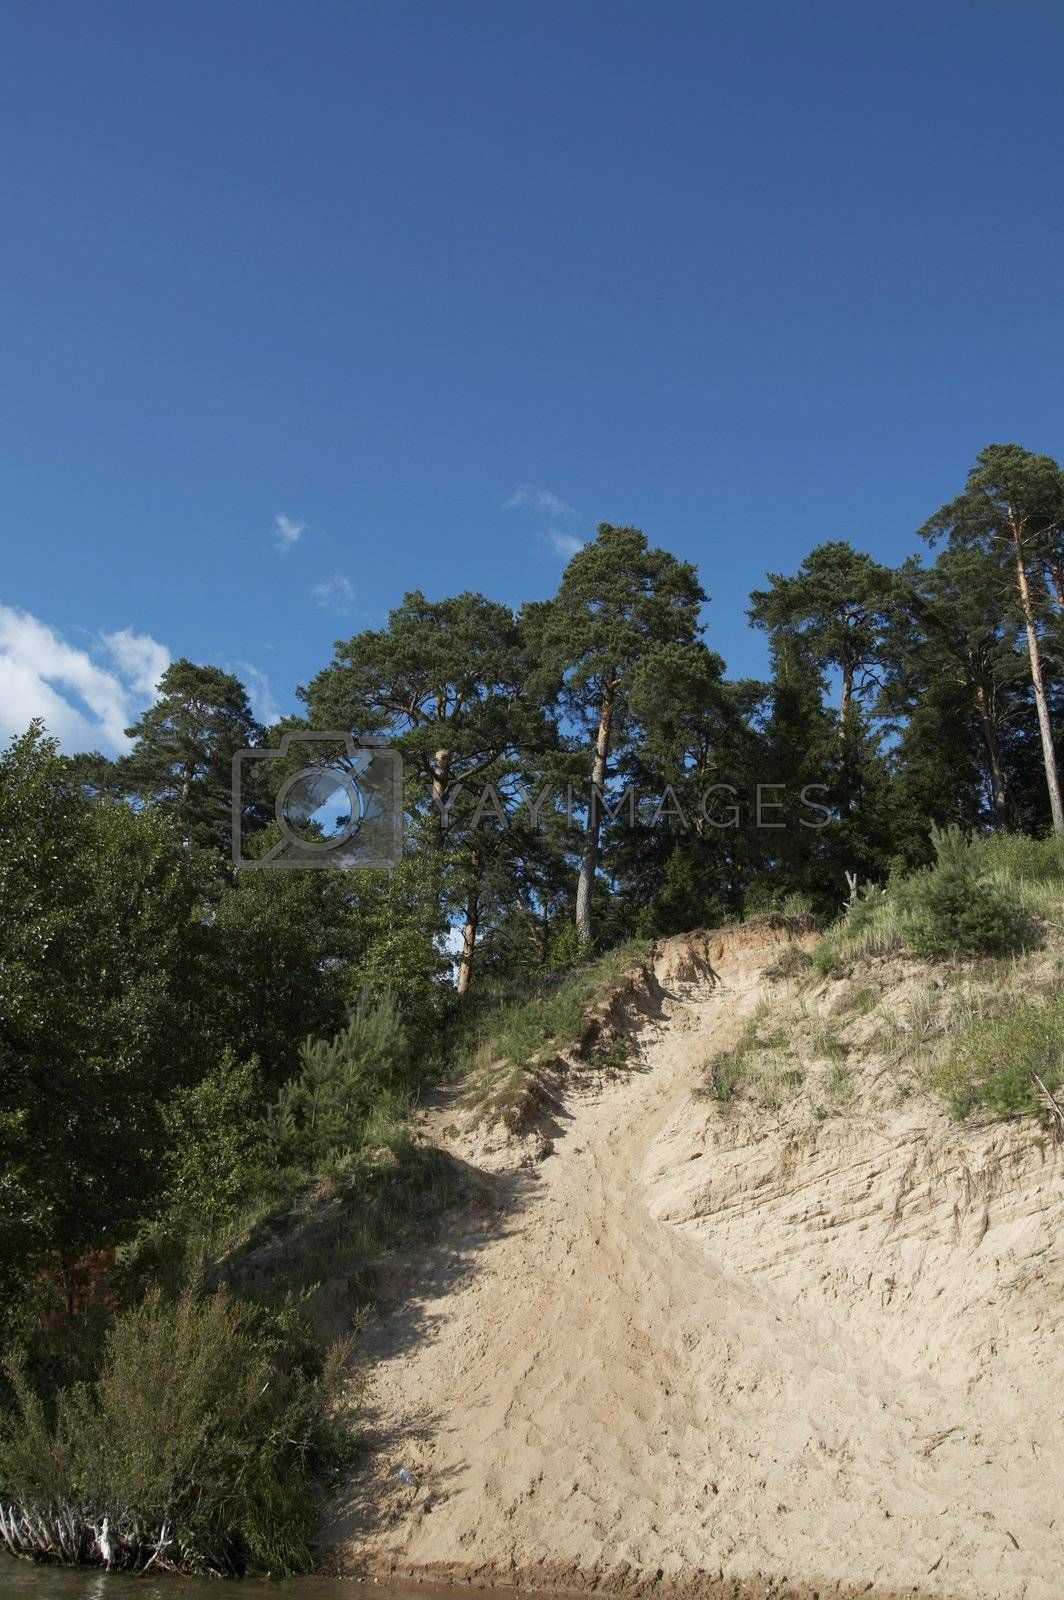 Pines on slope. Lithuania landscape with blue sky and clouds